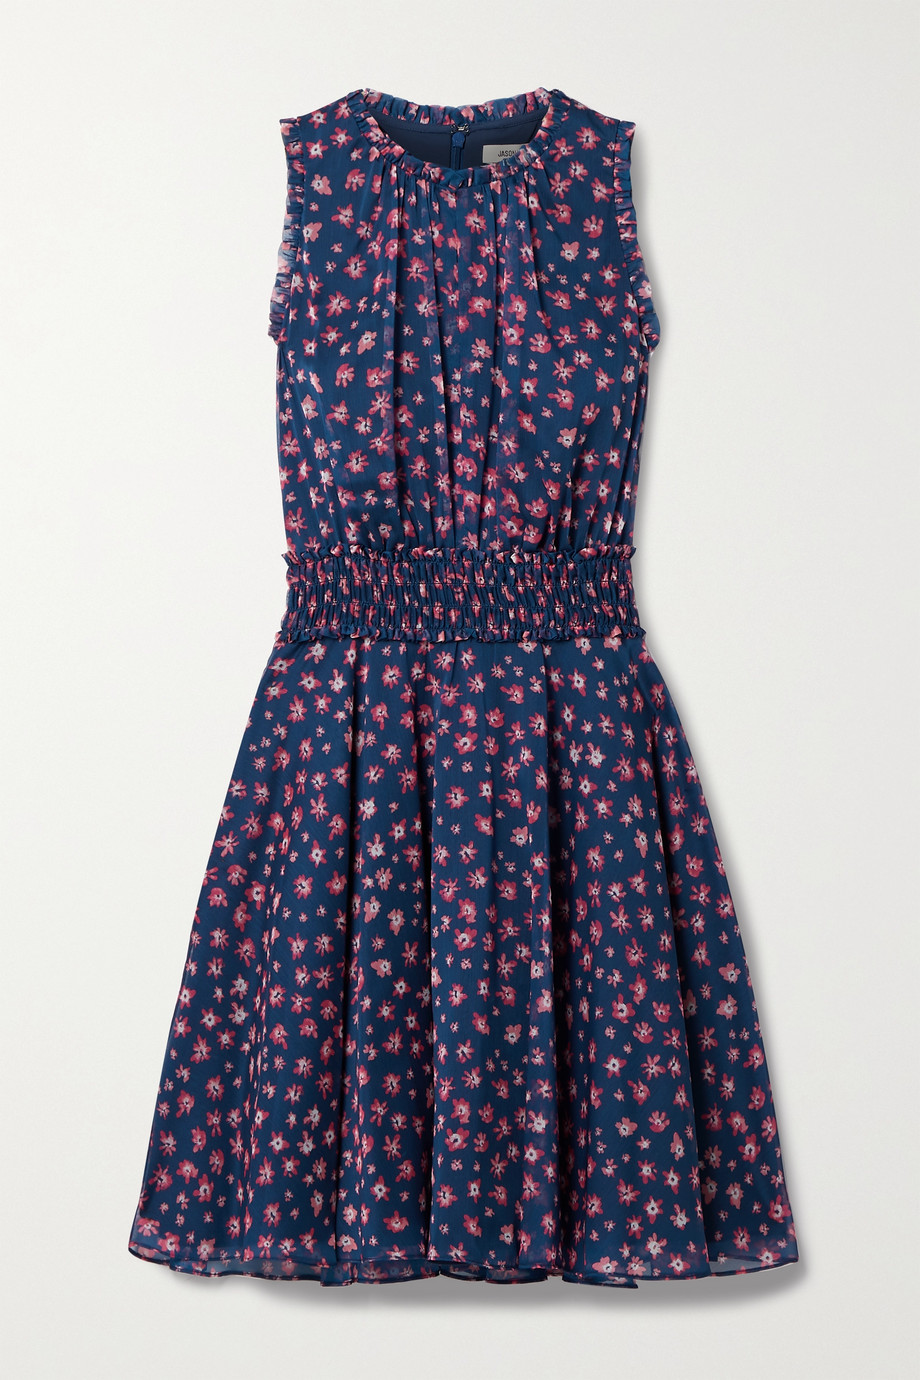 Jason Wu Shirred floral-print chiffon dress